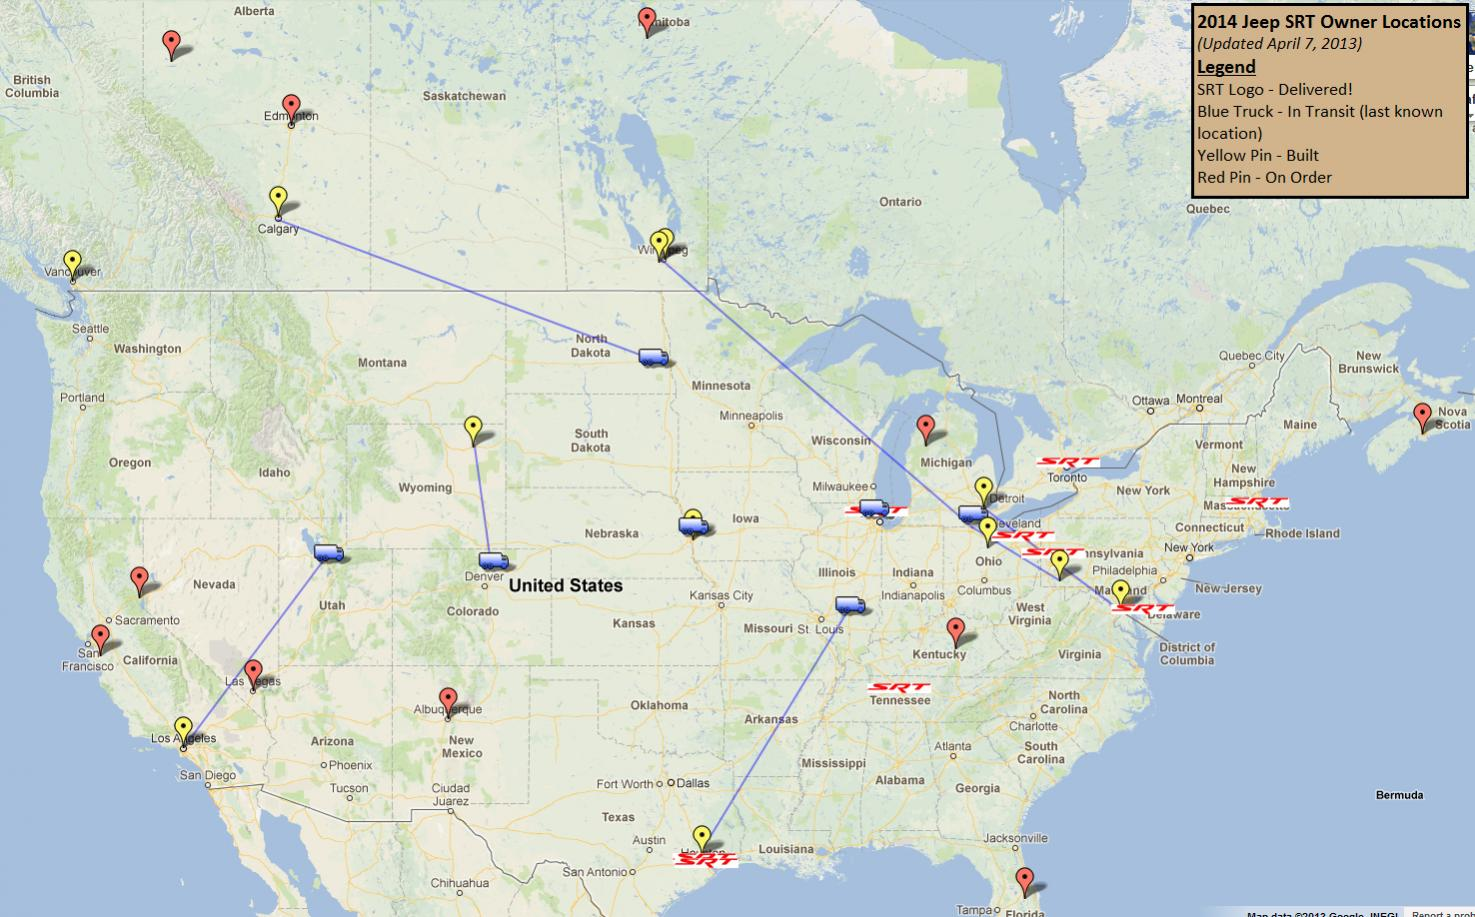 2014 SRT Owners Map 2013 04 07